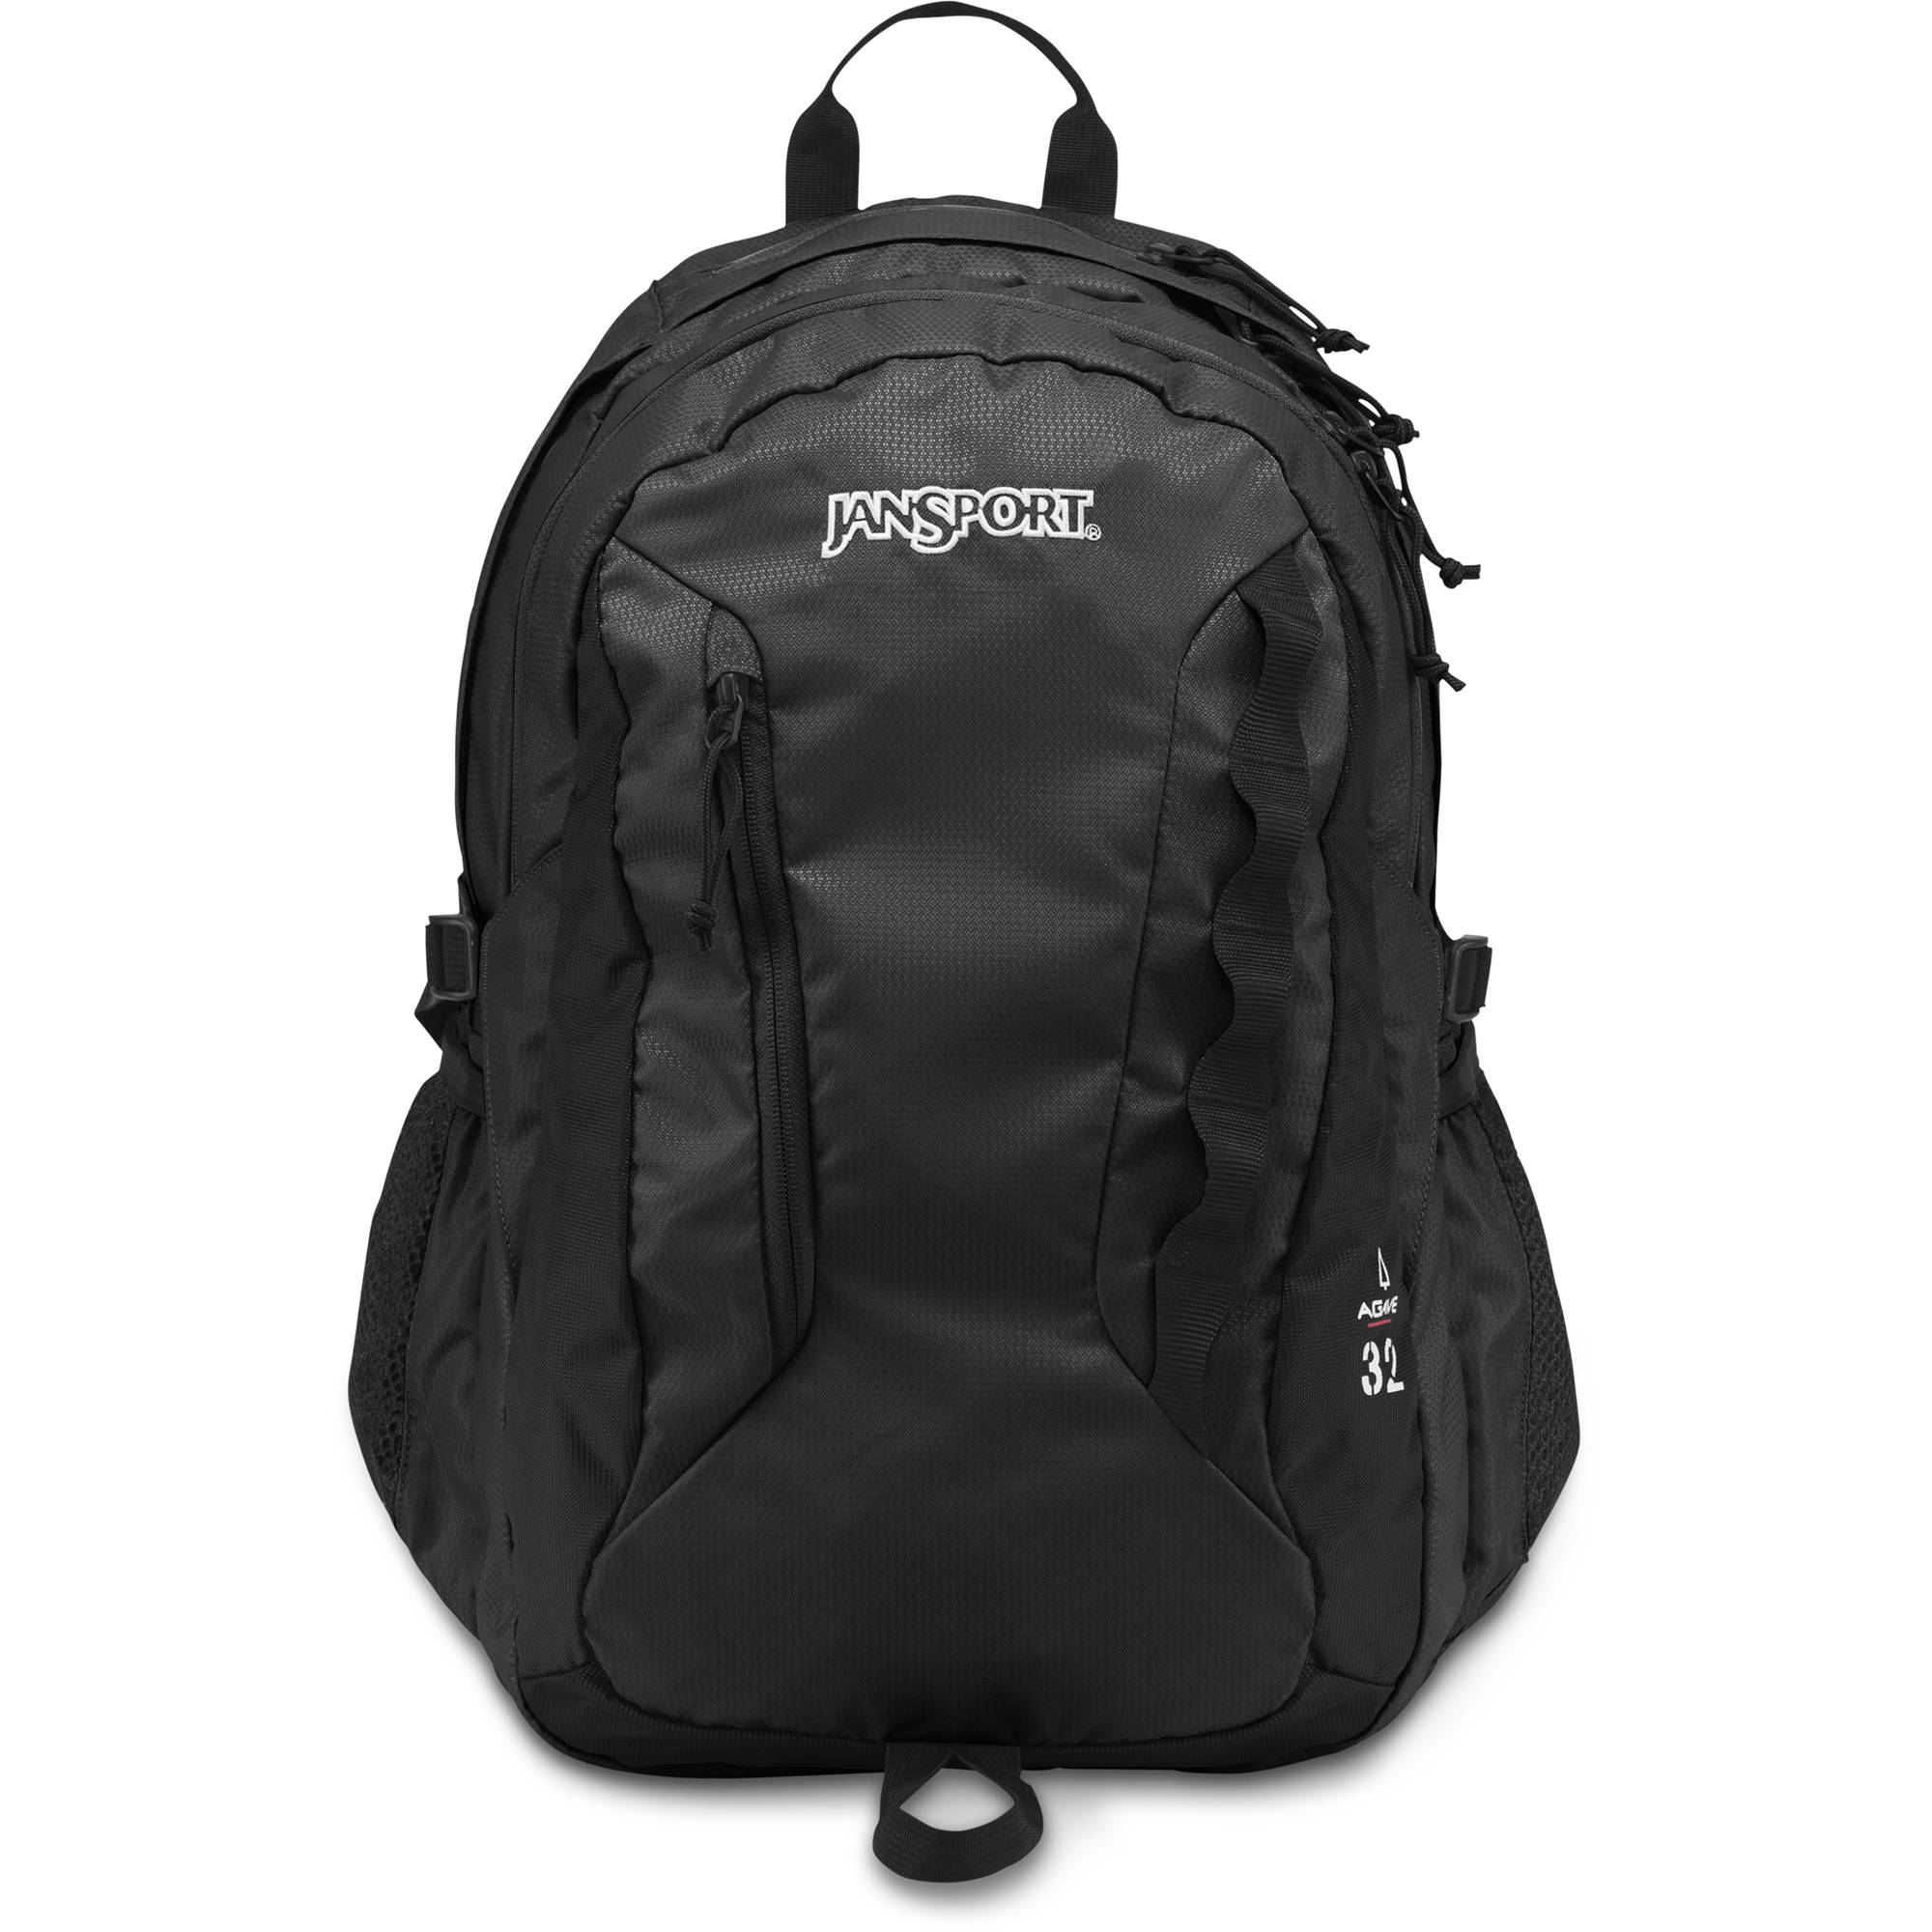 6d8e24c8acdb Stores That Sell Jansport Backpacks In Canada- Fenix Toulouse Handball